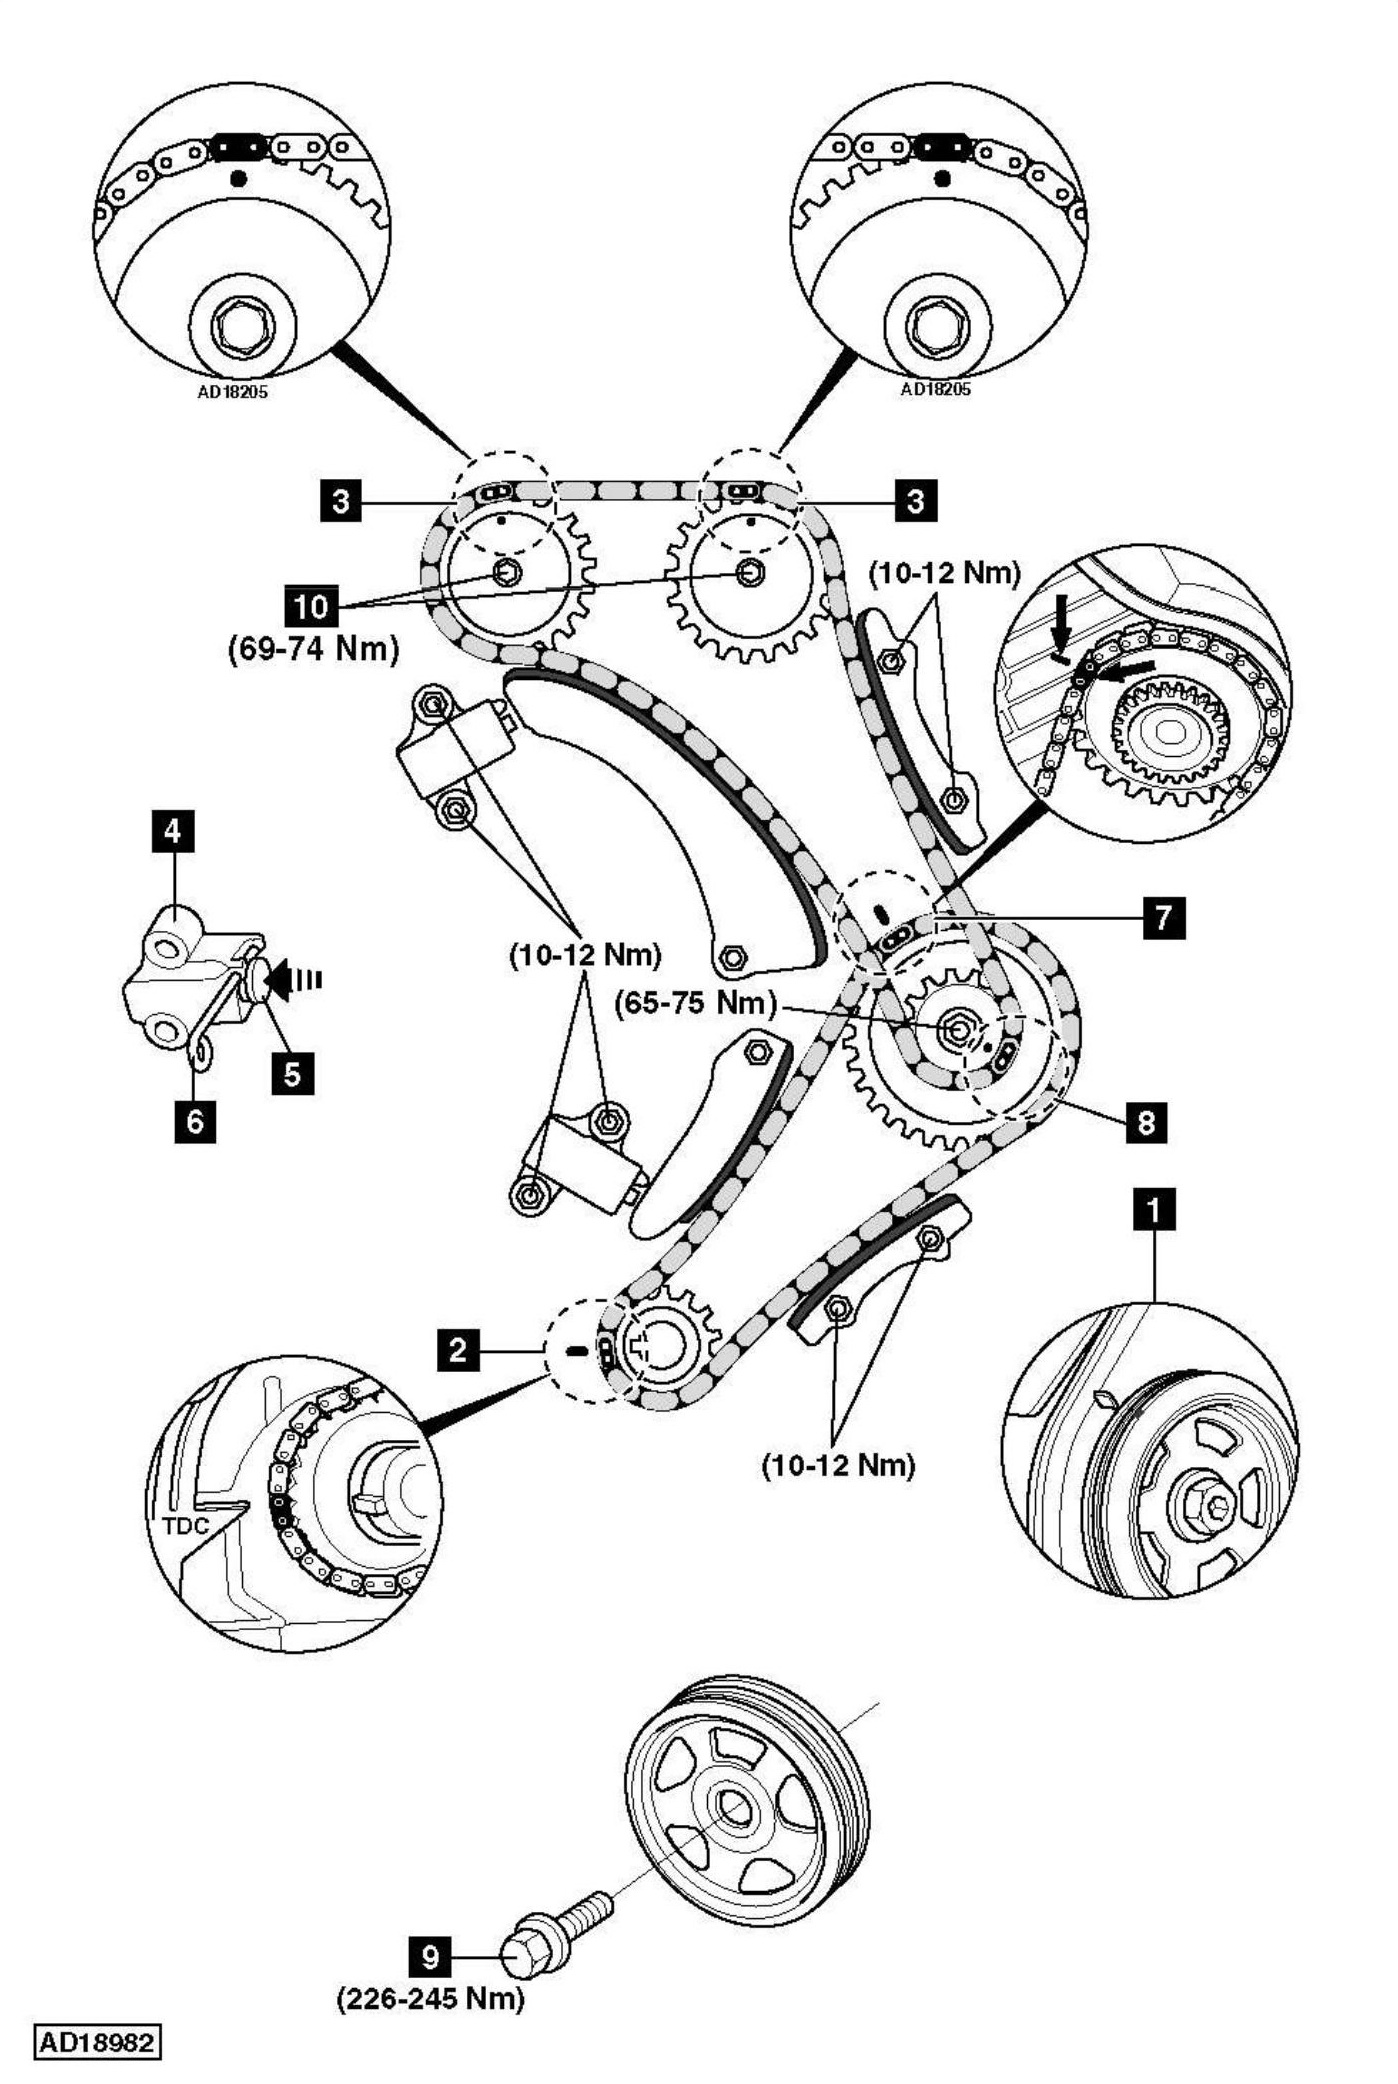 Automotive blueprints likewise Seat likewise Spark Plug Wiring Diagram furthermore Photos further Exploring Inner Workings Of Giant Robots. on alfa romeo engine